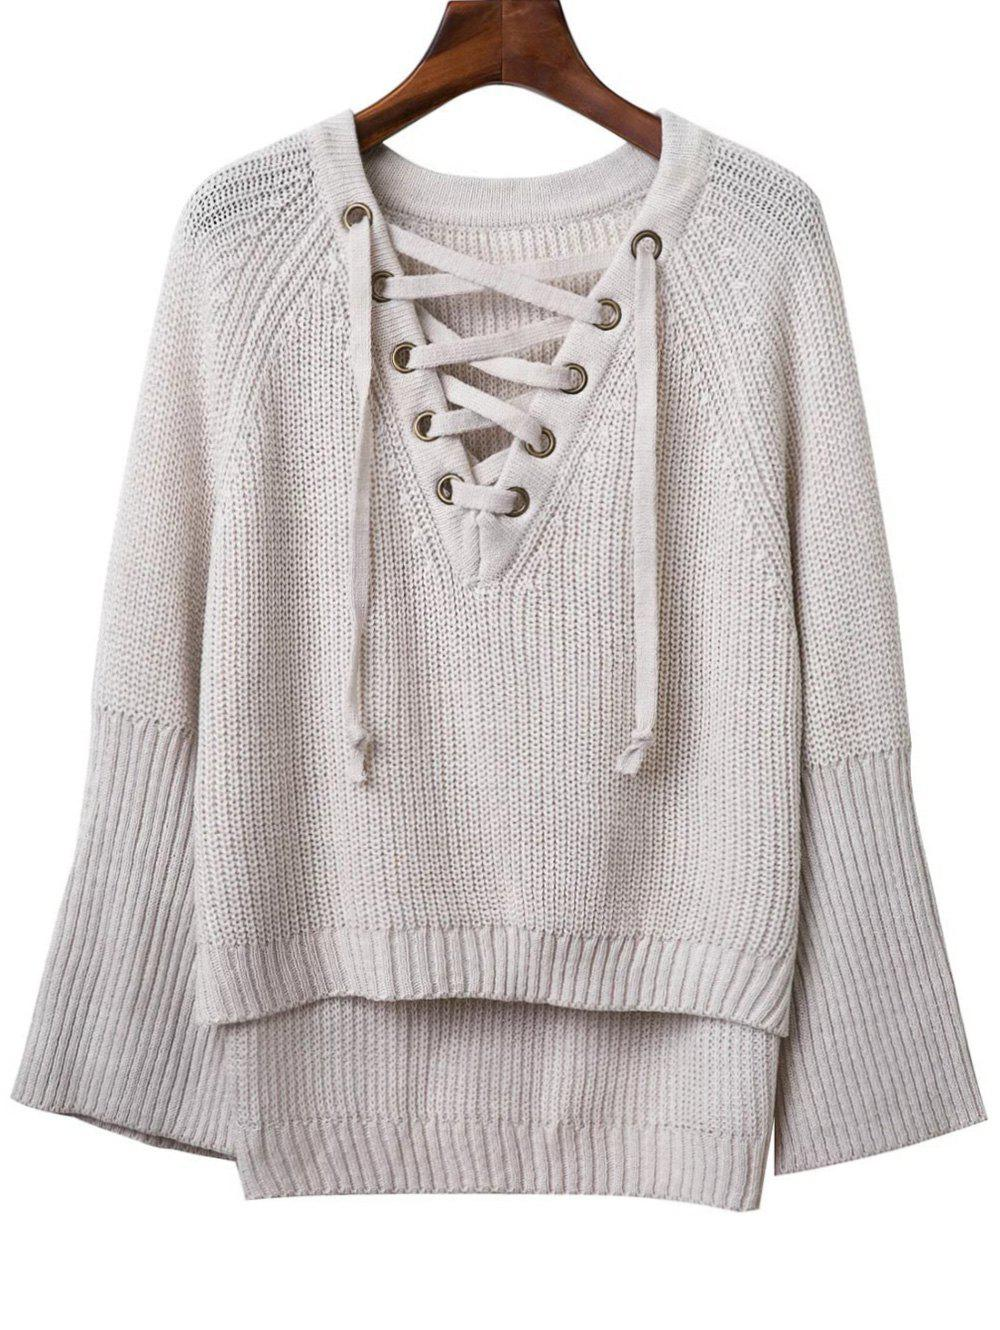 Fashion V Neck Long Sleeve Lace Up Sweater For Women - LIGHT GRAY ONE SIZE